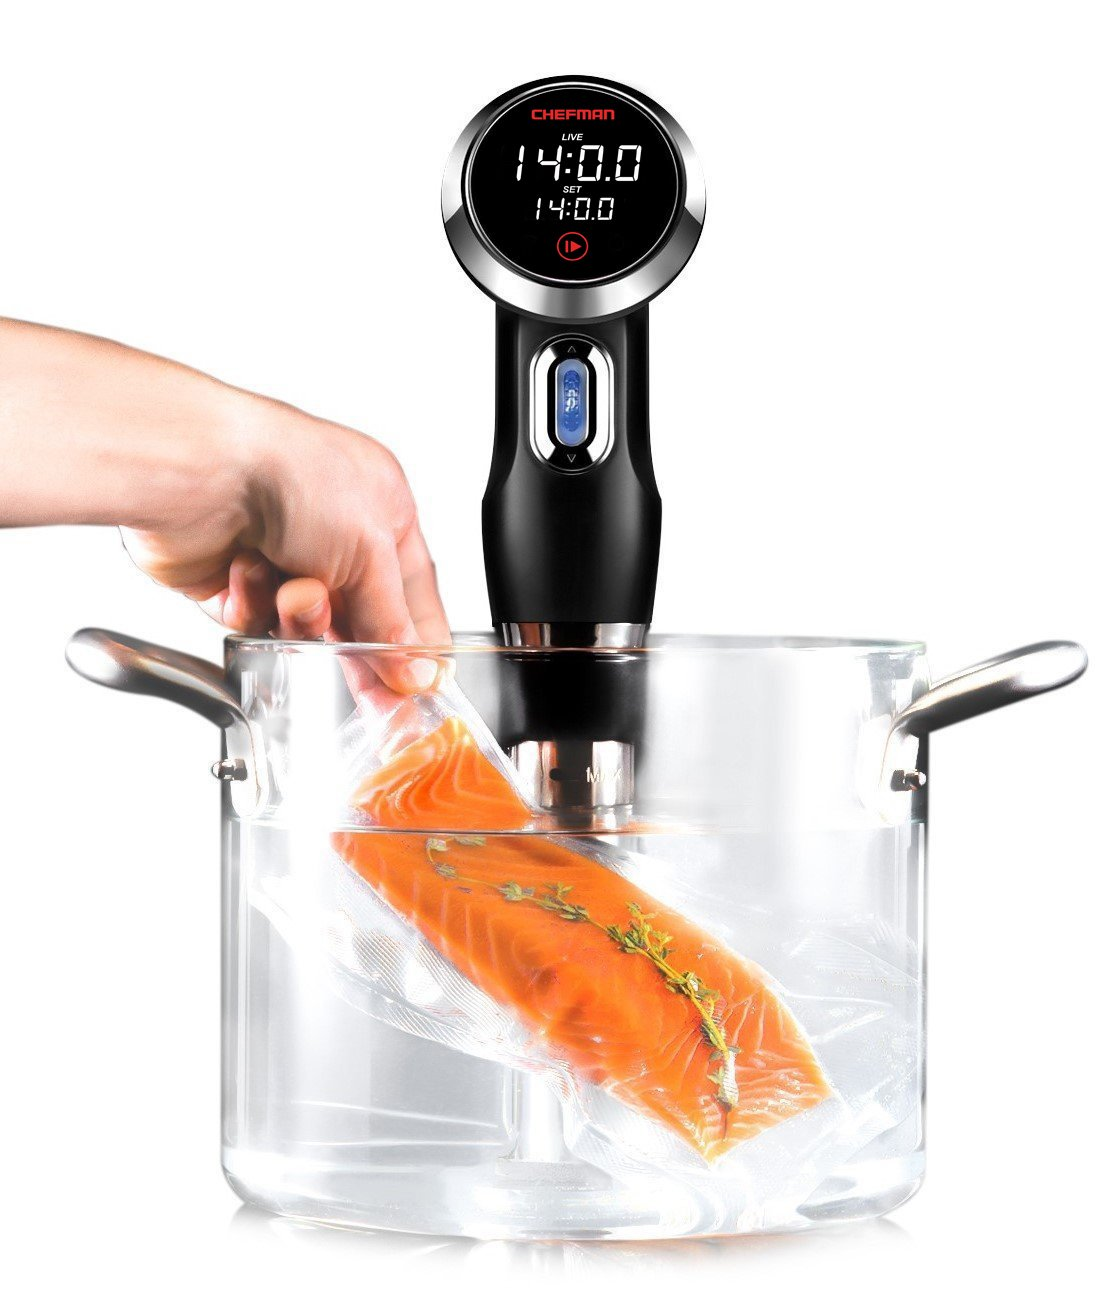 Chefman Sous Vide Immersion Circulator w/Precise Temperature Programmable Digital Touch Screen Display and Easy to Use Controls Black